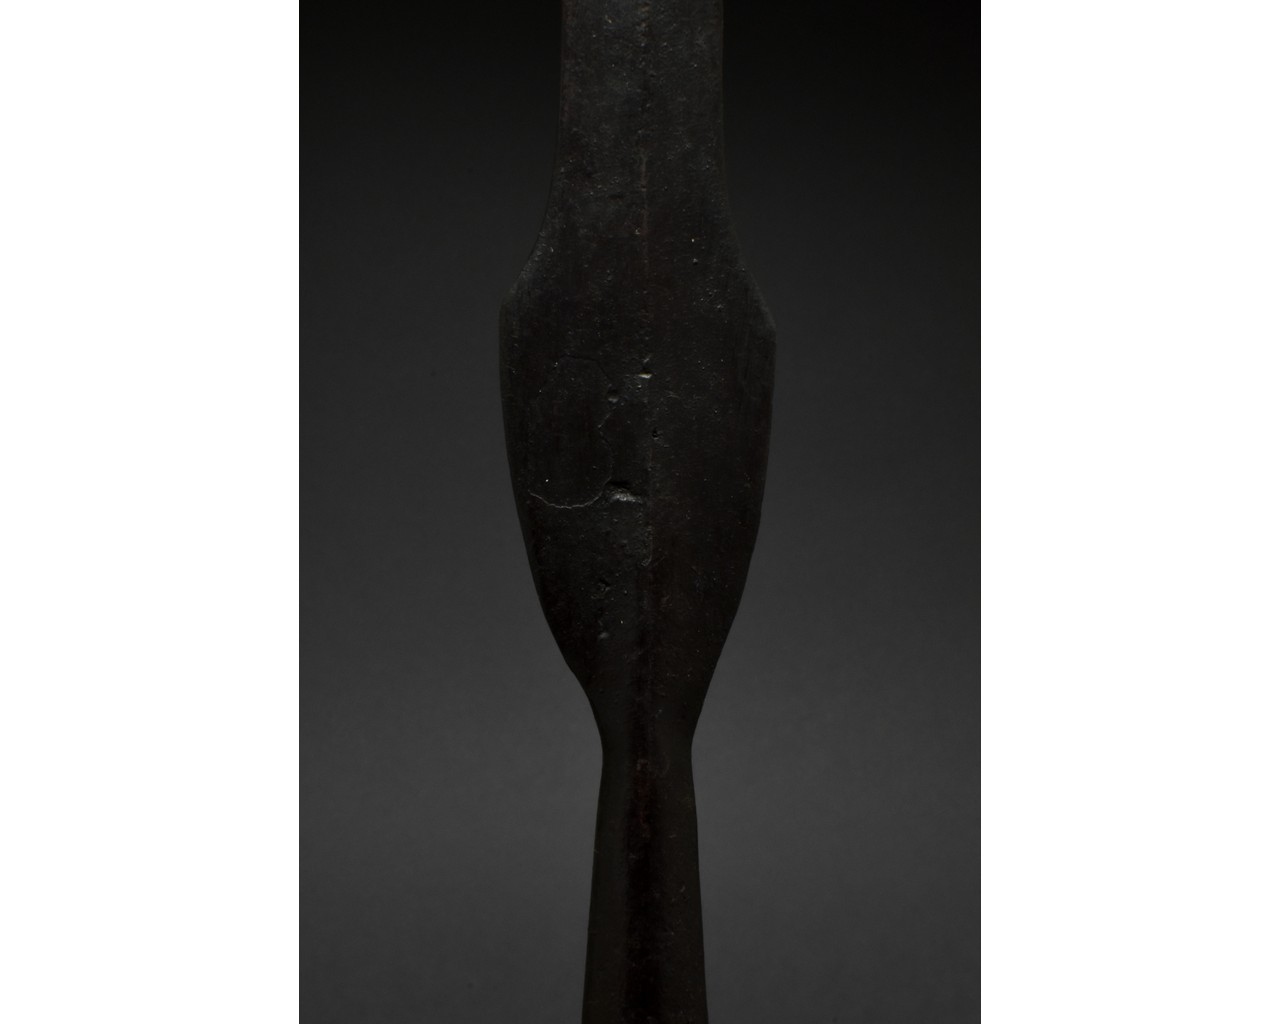 MEDIEVAL VIKING AGE IRON SPEAR HEAD - Image 4 of 5